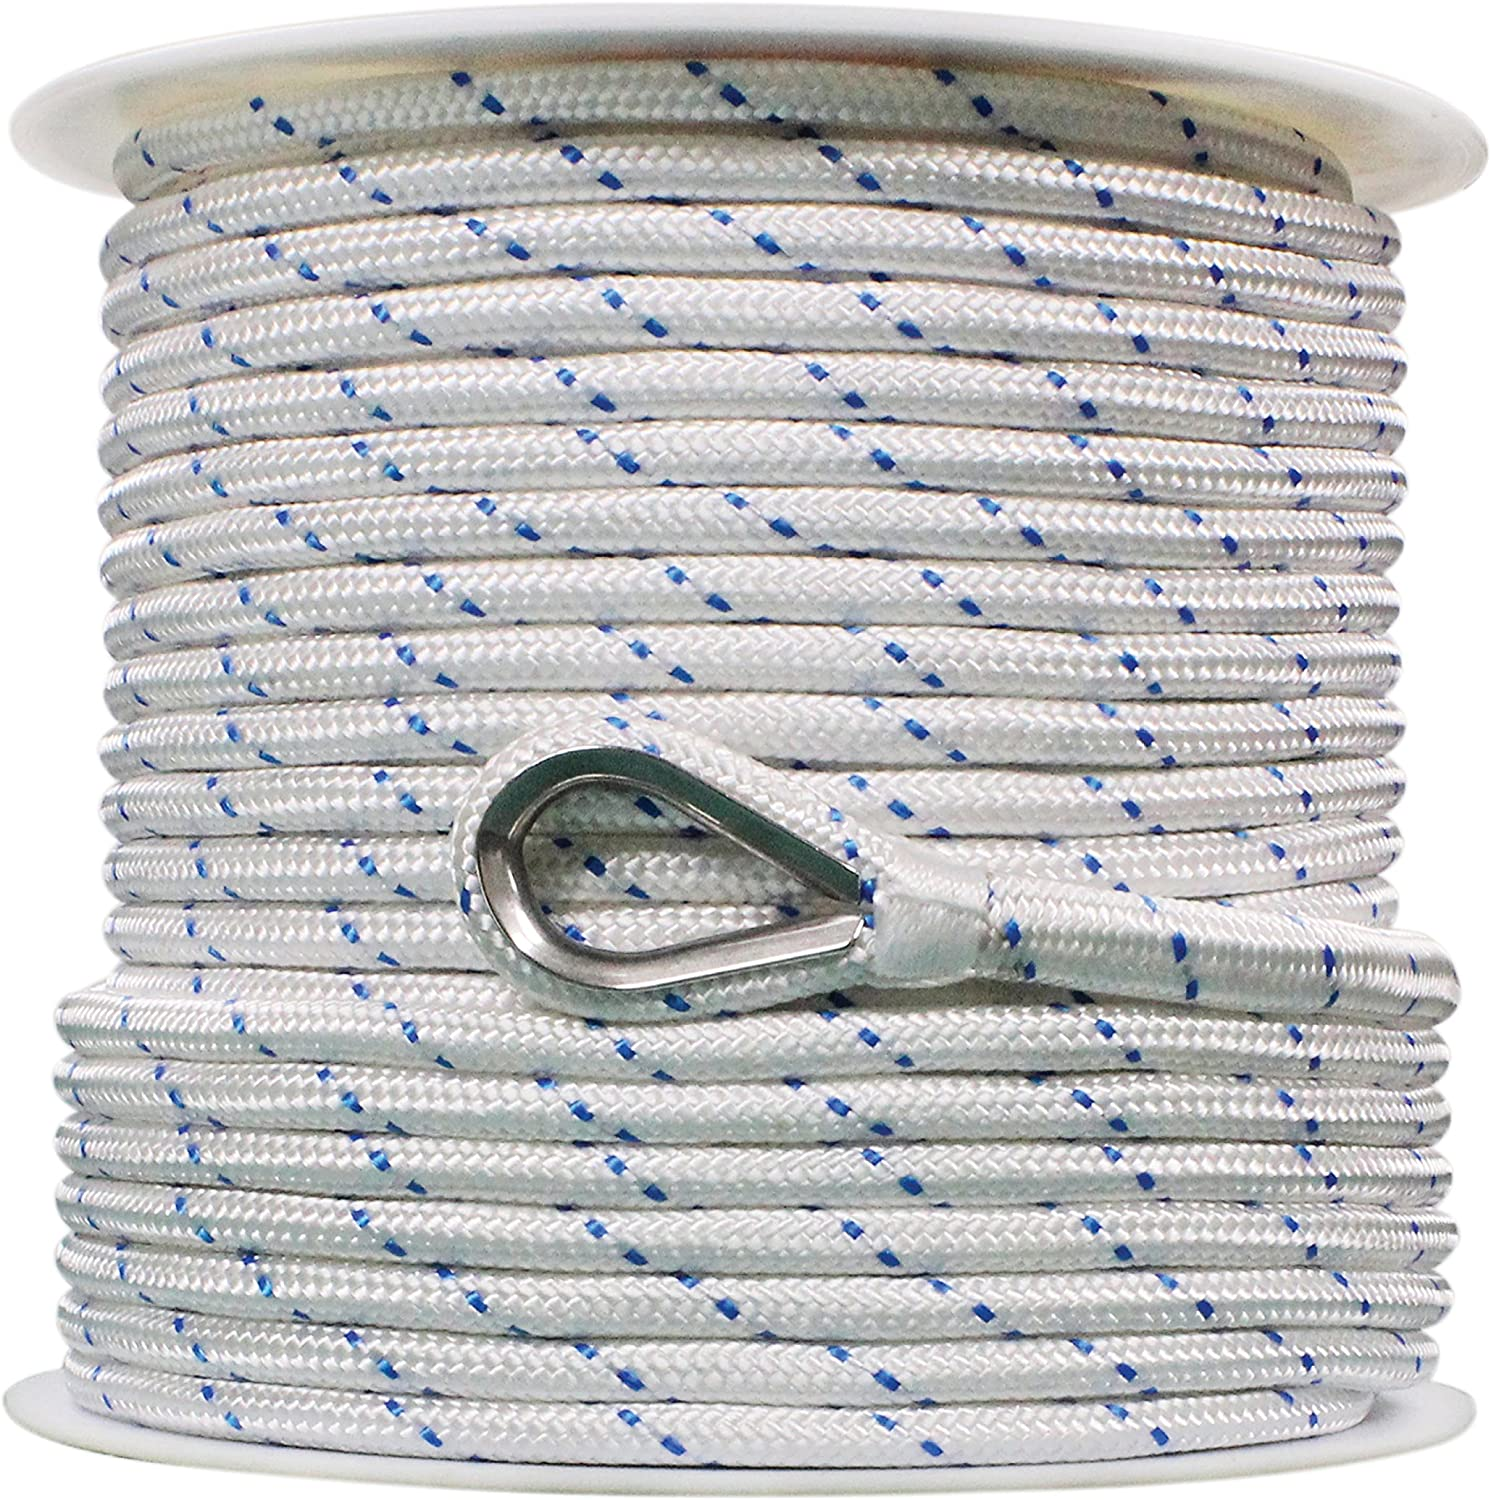 Extreme Max 3006.2505 White w//Blue Tracer 3//8 x 250 BoatTector Double Braid Nylon Anchor Line with Thimble